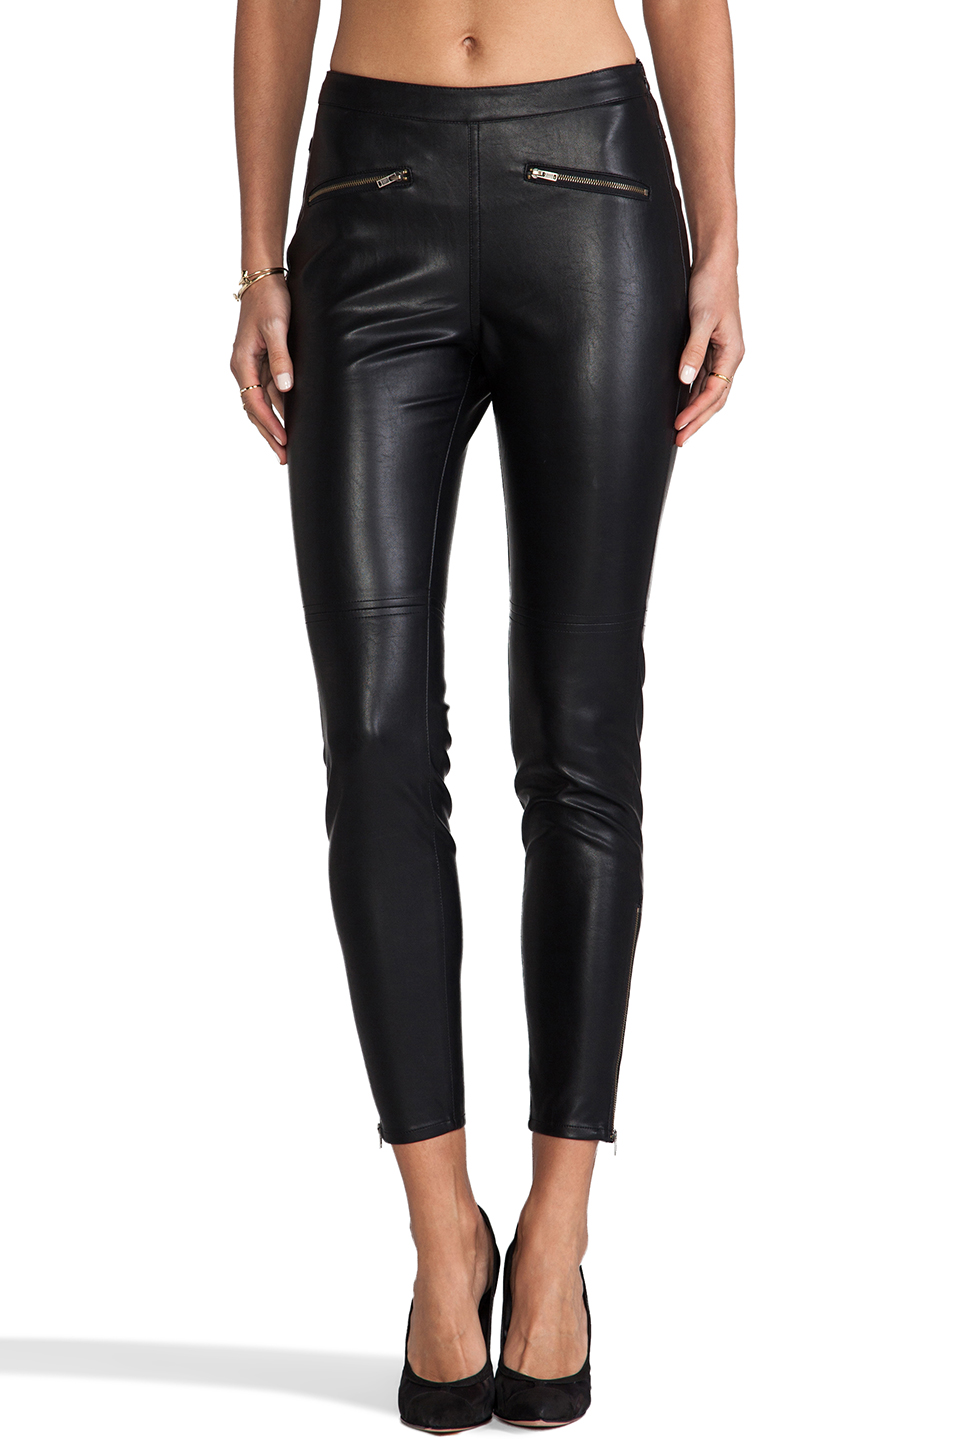 http://www.revolveclothing.com/mm-couture-by-miss-me-faux-leather-pants-in-black/dp/MIME-WP12/?AID=10568535&PID=2687457&utm_medium=affiliate&utm_source=cj&utm_content=10568535&utm_campaign=2687457&cvosrc=affiliate.cj.2687457